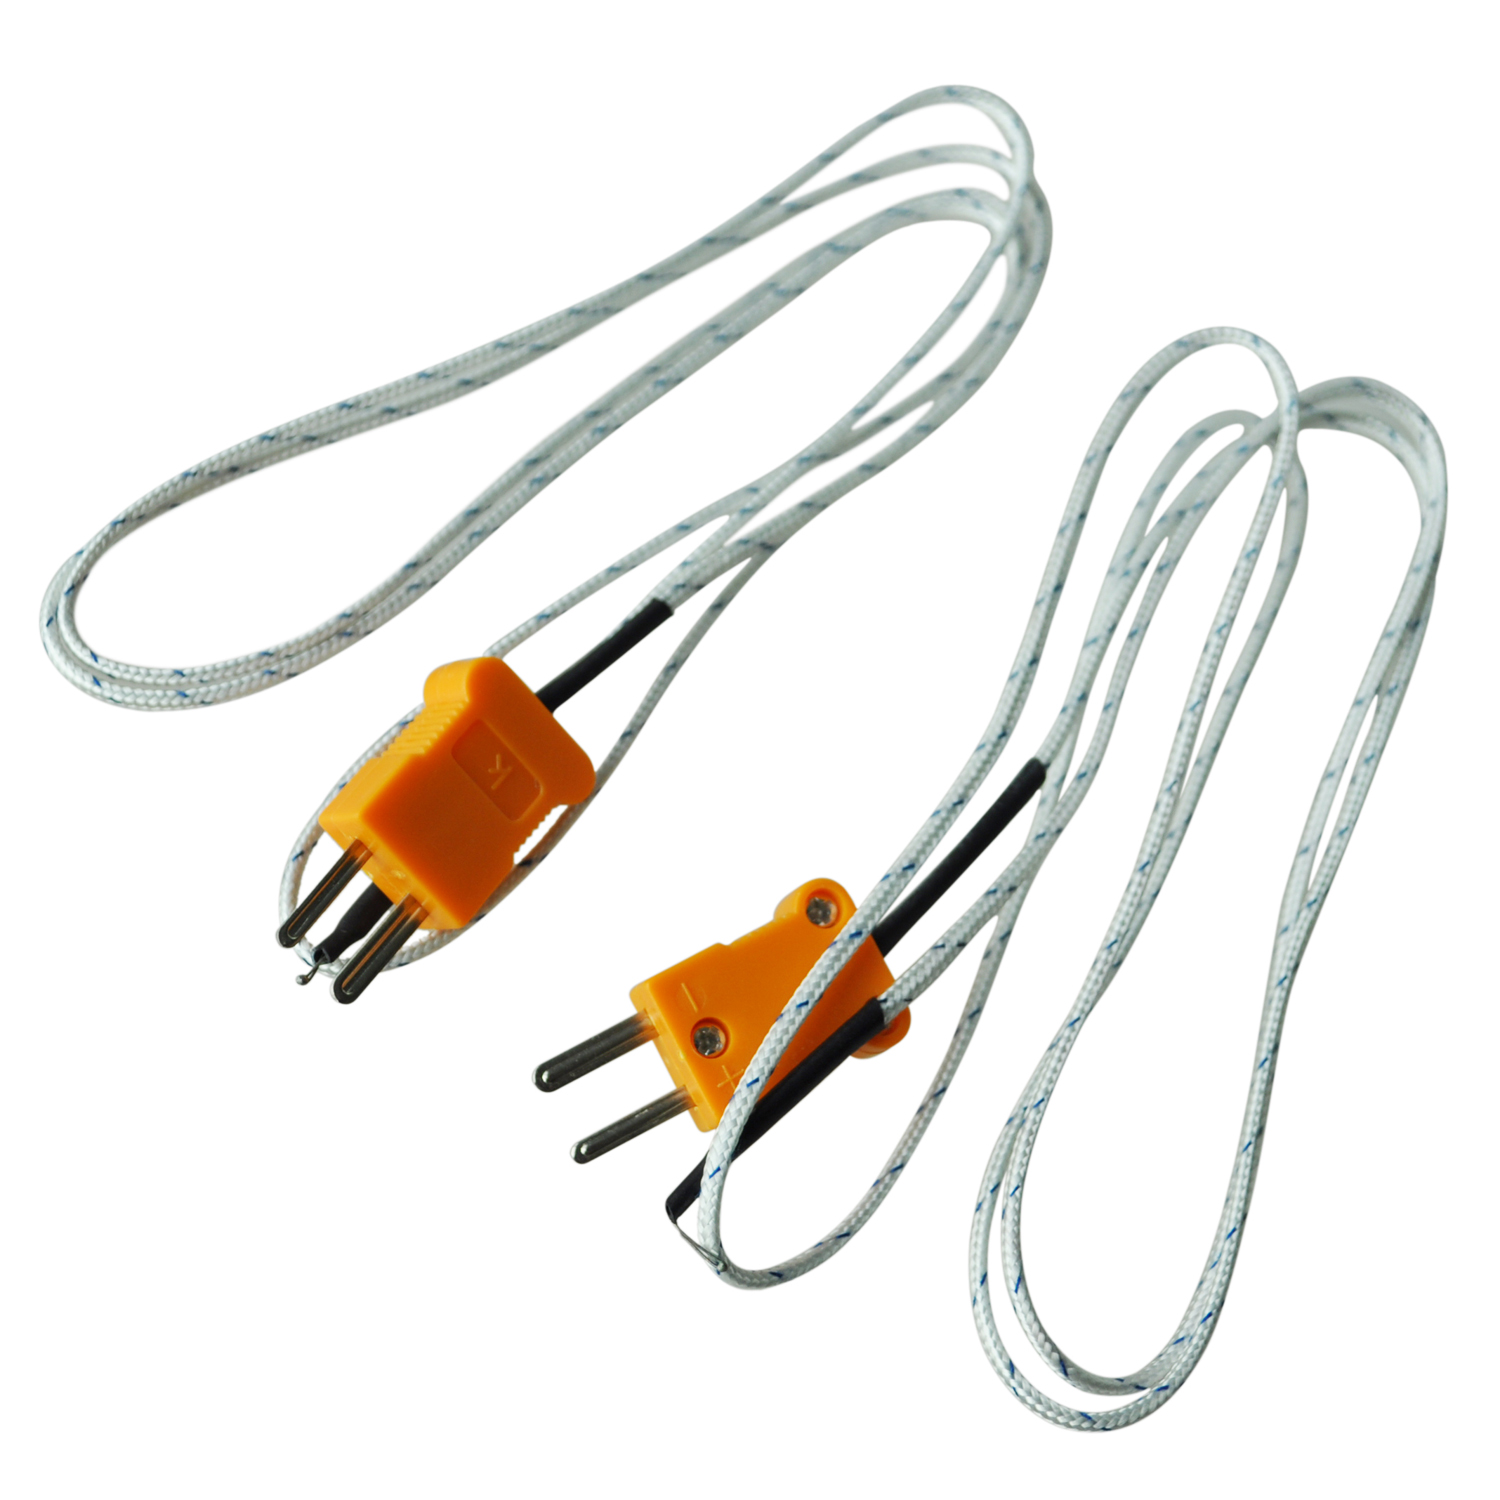 Two Wire Thermocouple : Pcs k type c wire lead measuring thermocouple sensor